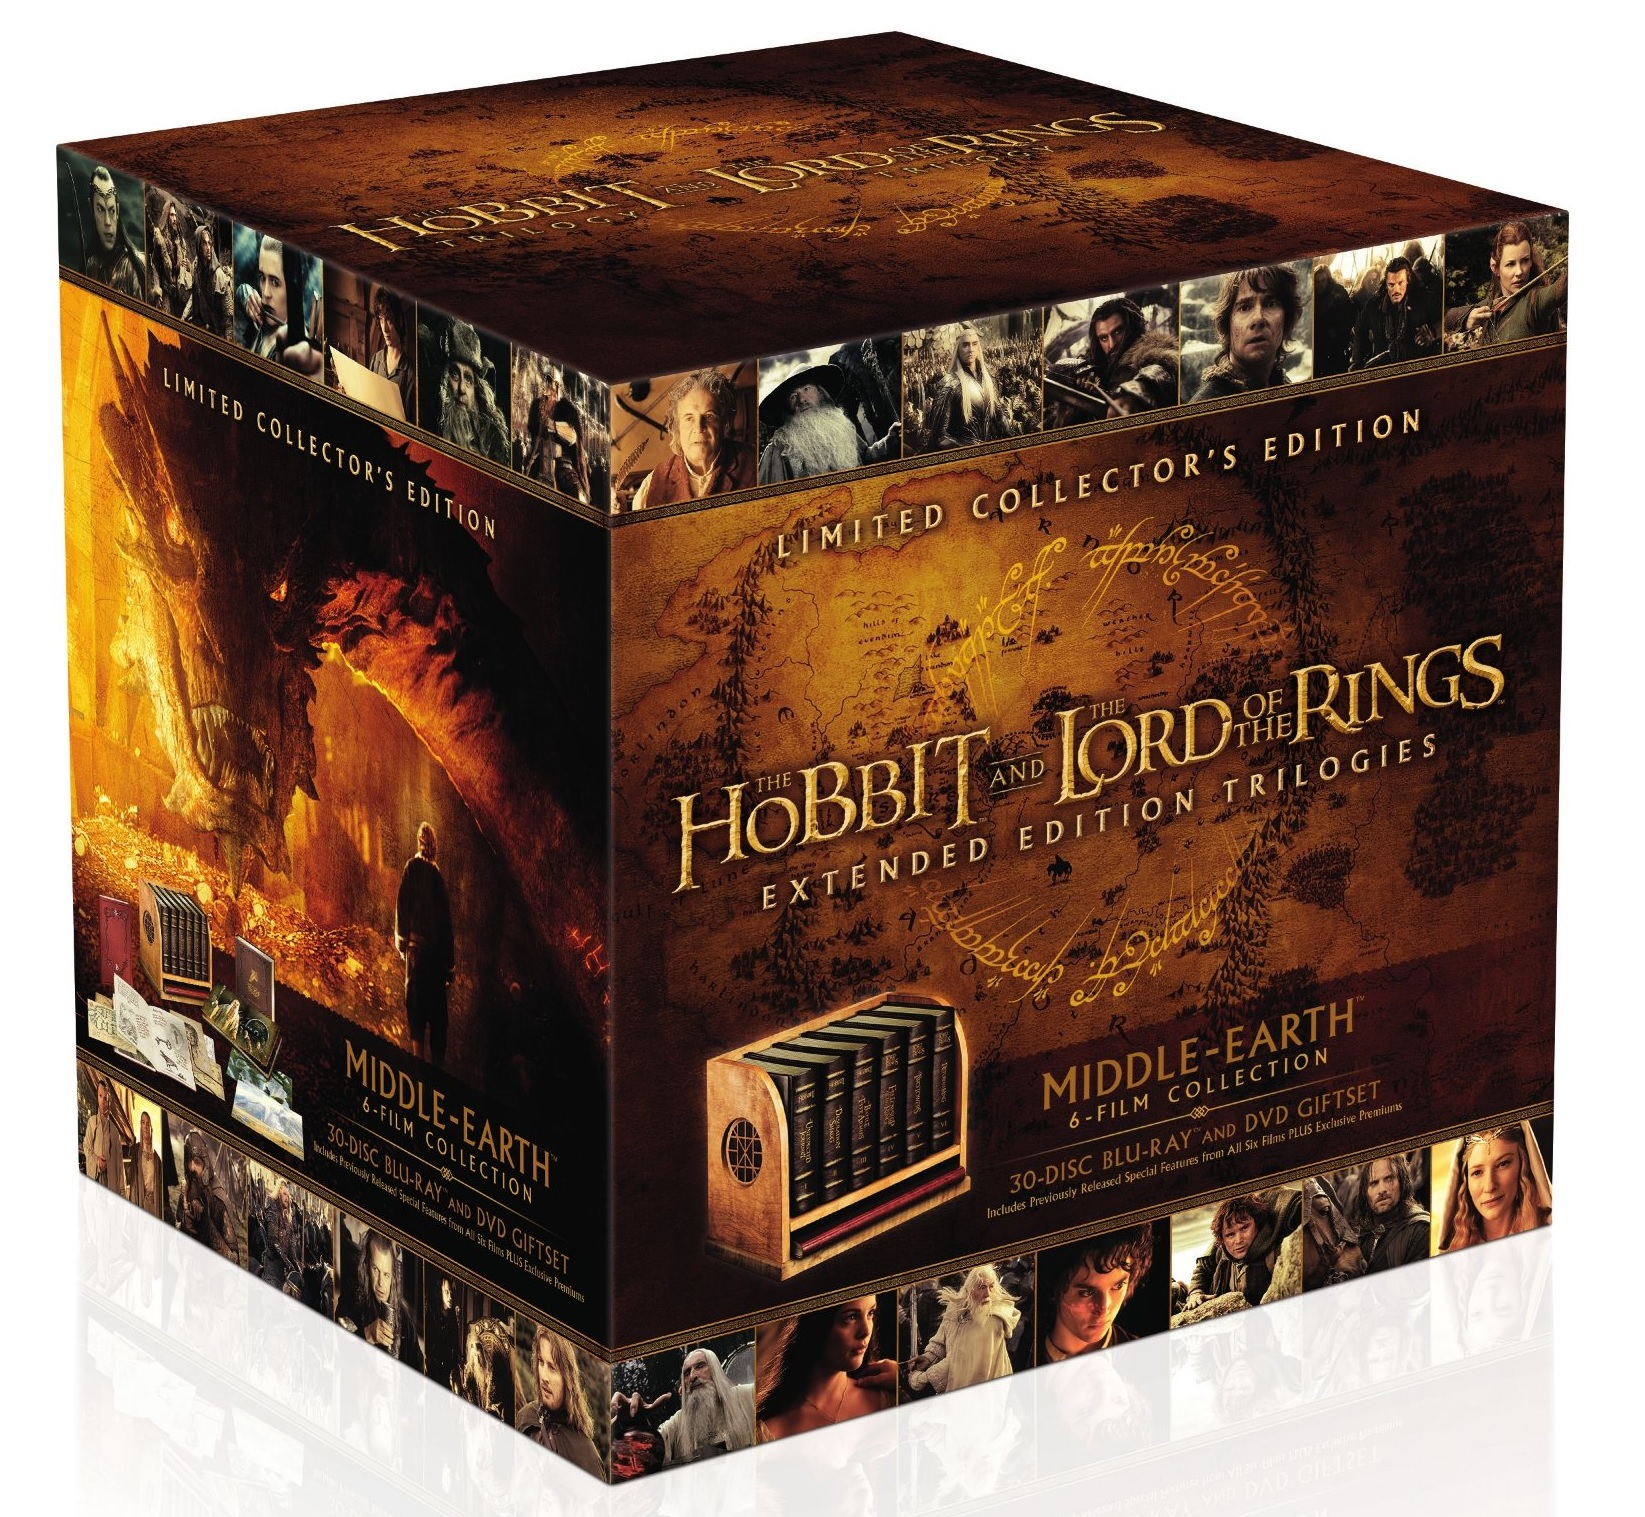 Middle Earth Blu-ray